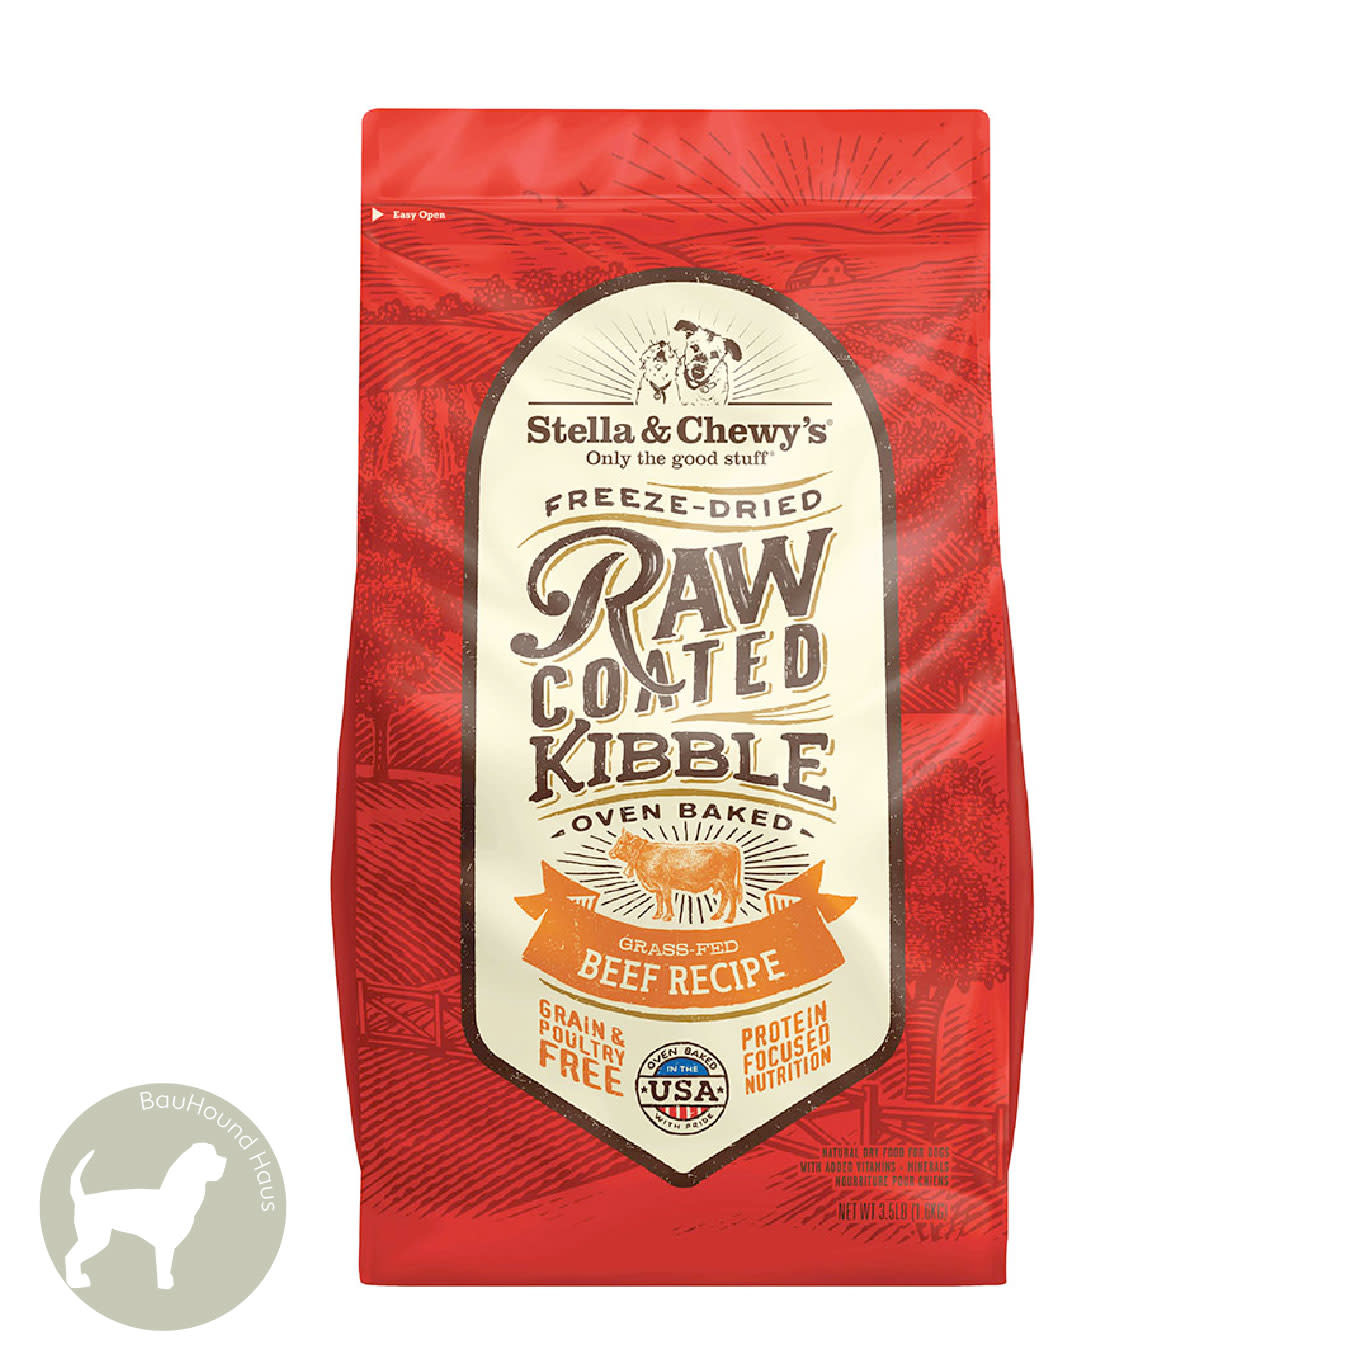 Stella & Chewy's Stella & Chewy's Freeze Dried Raw Coated Kibble Beef Recipe, 10lb